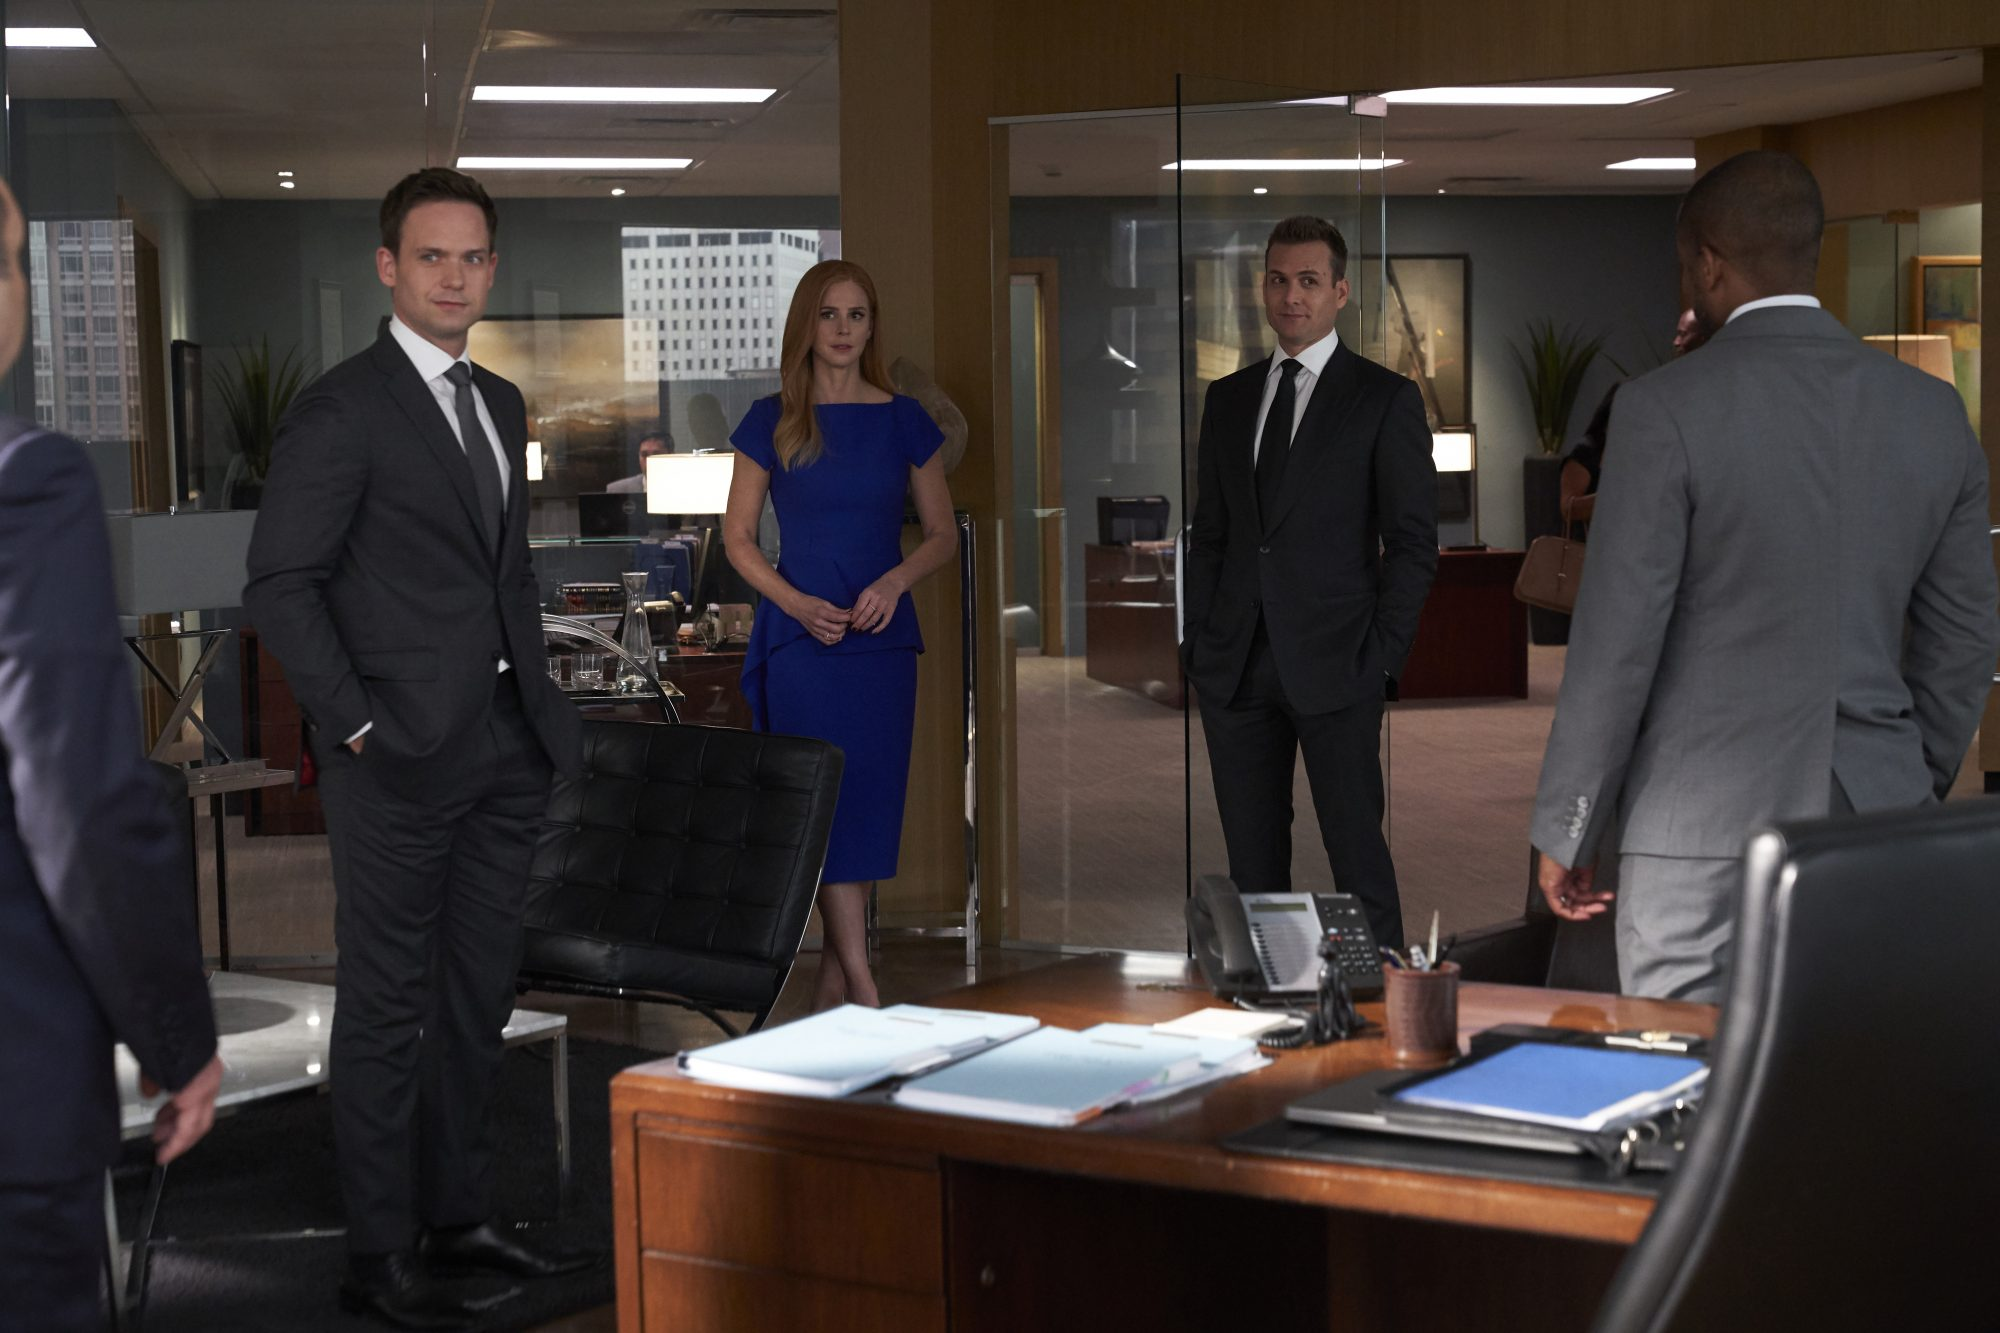 suits series finale creator aaron korsh on bittersweet ending coming full circle which alums couldn t come back what s next deadline suits series finale creator aaron